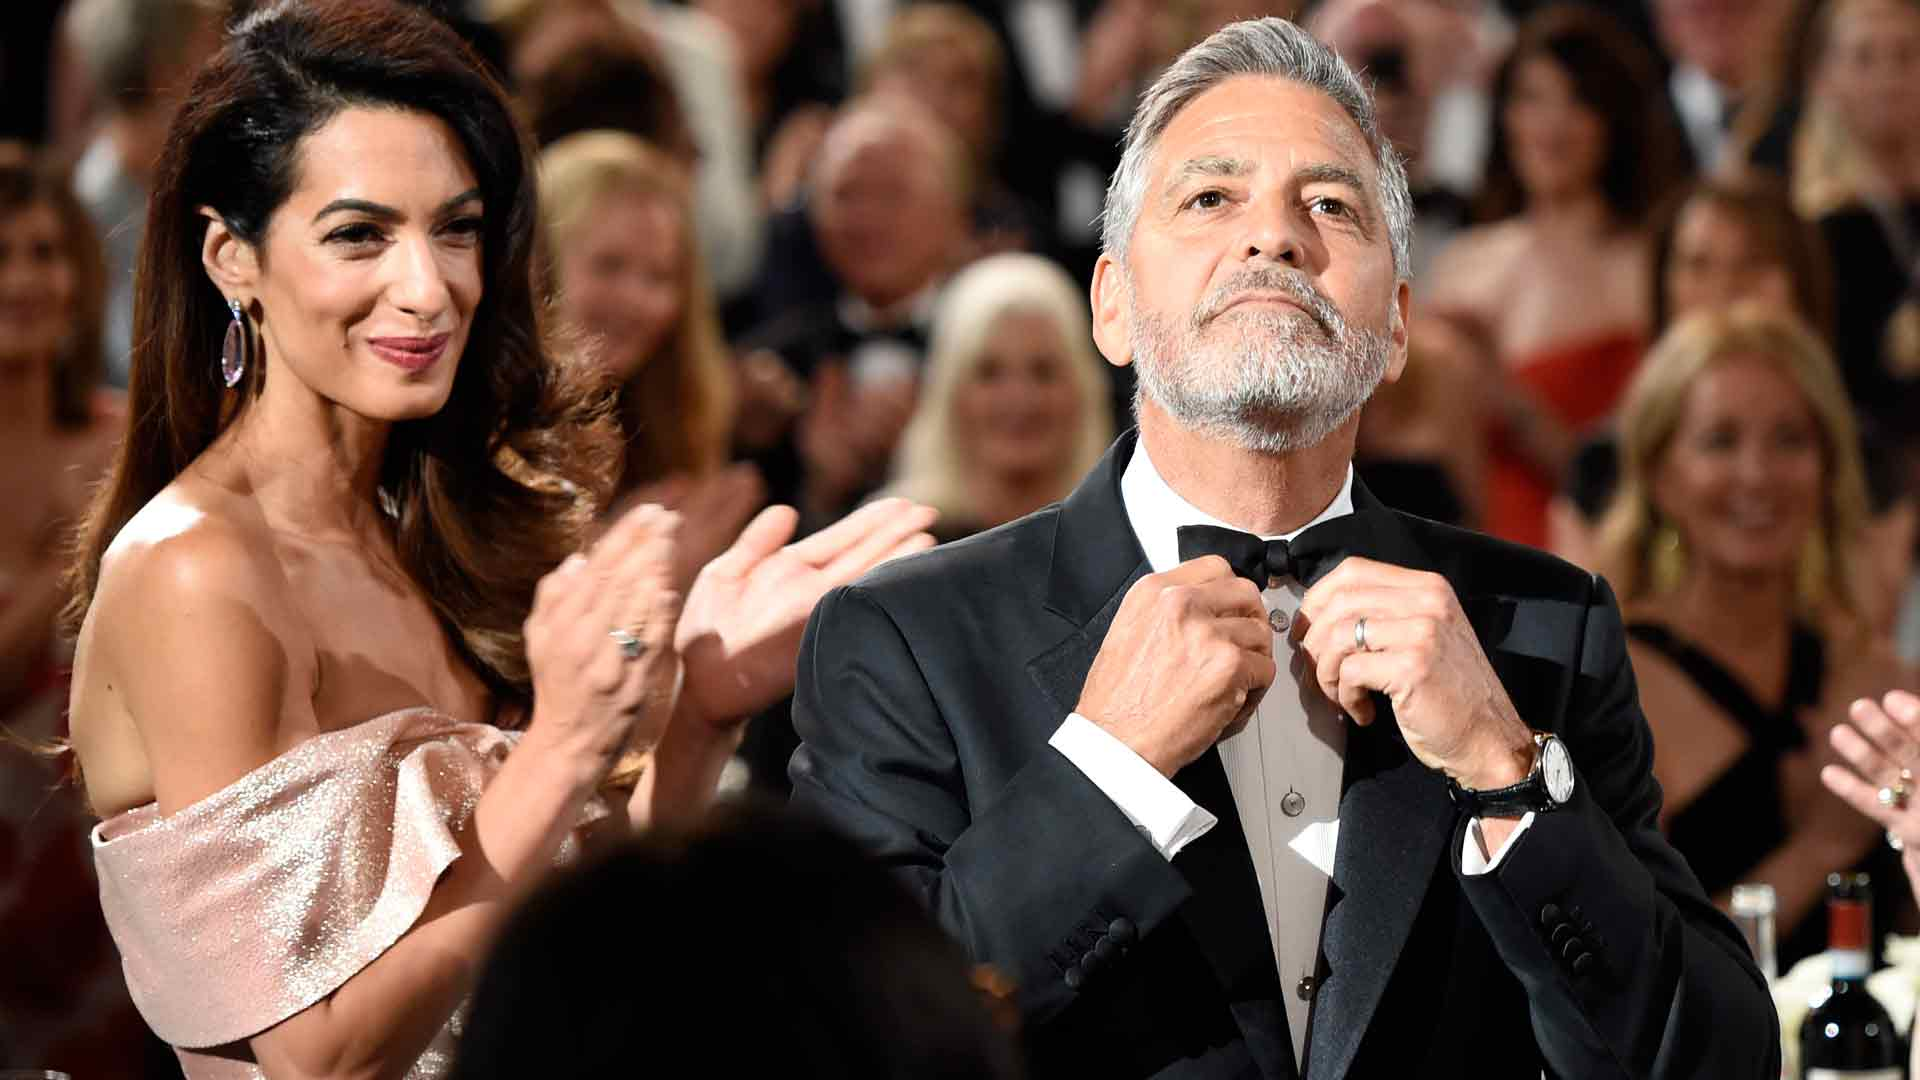 Datos curiosos sobre George Clooney - 9. Actor mejor pagado George Clooney